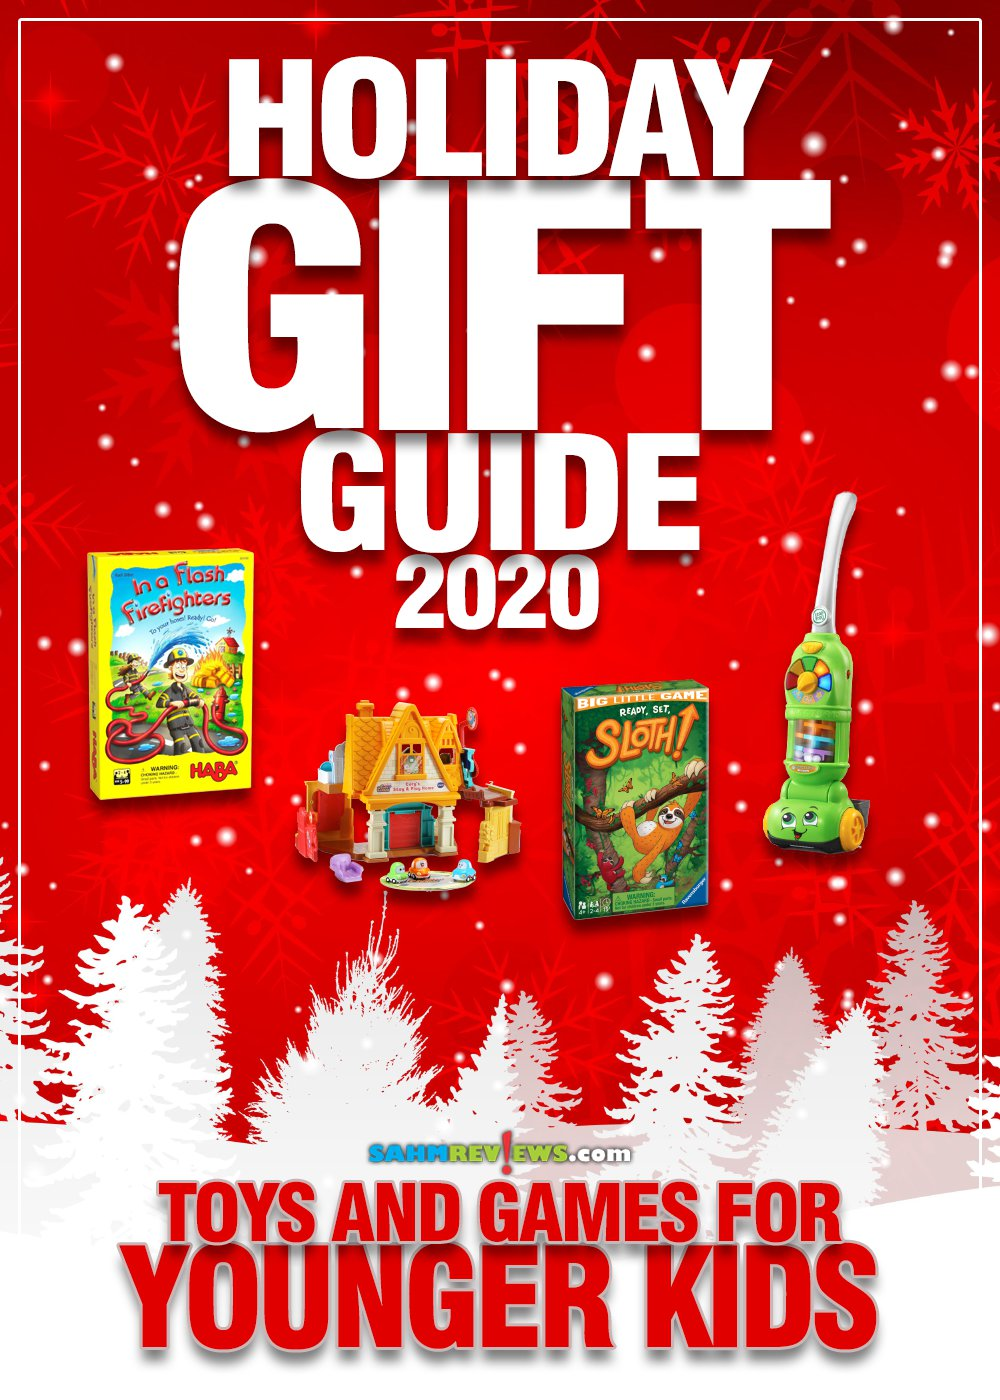 So many choices for young kids in the toy & game aisle. Here are our picks that will certainly please in our Toys & Games for Younger Kids Gift Guide! - SahmReviews.com